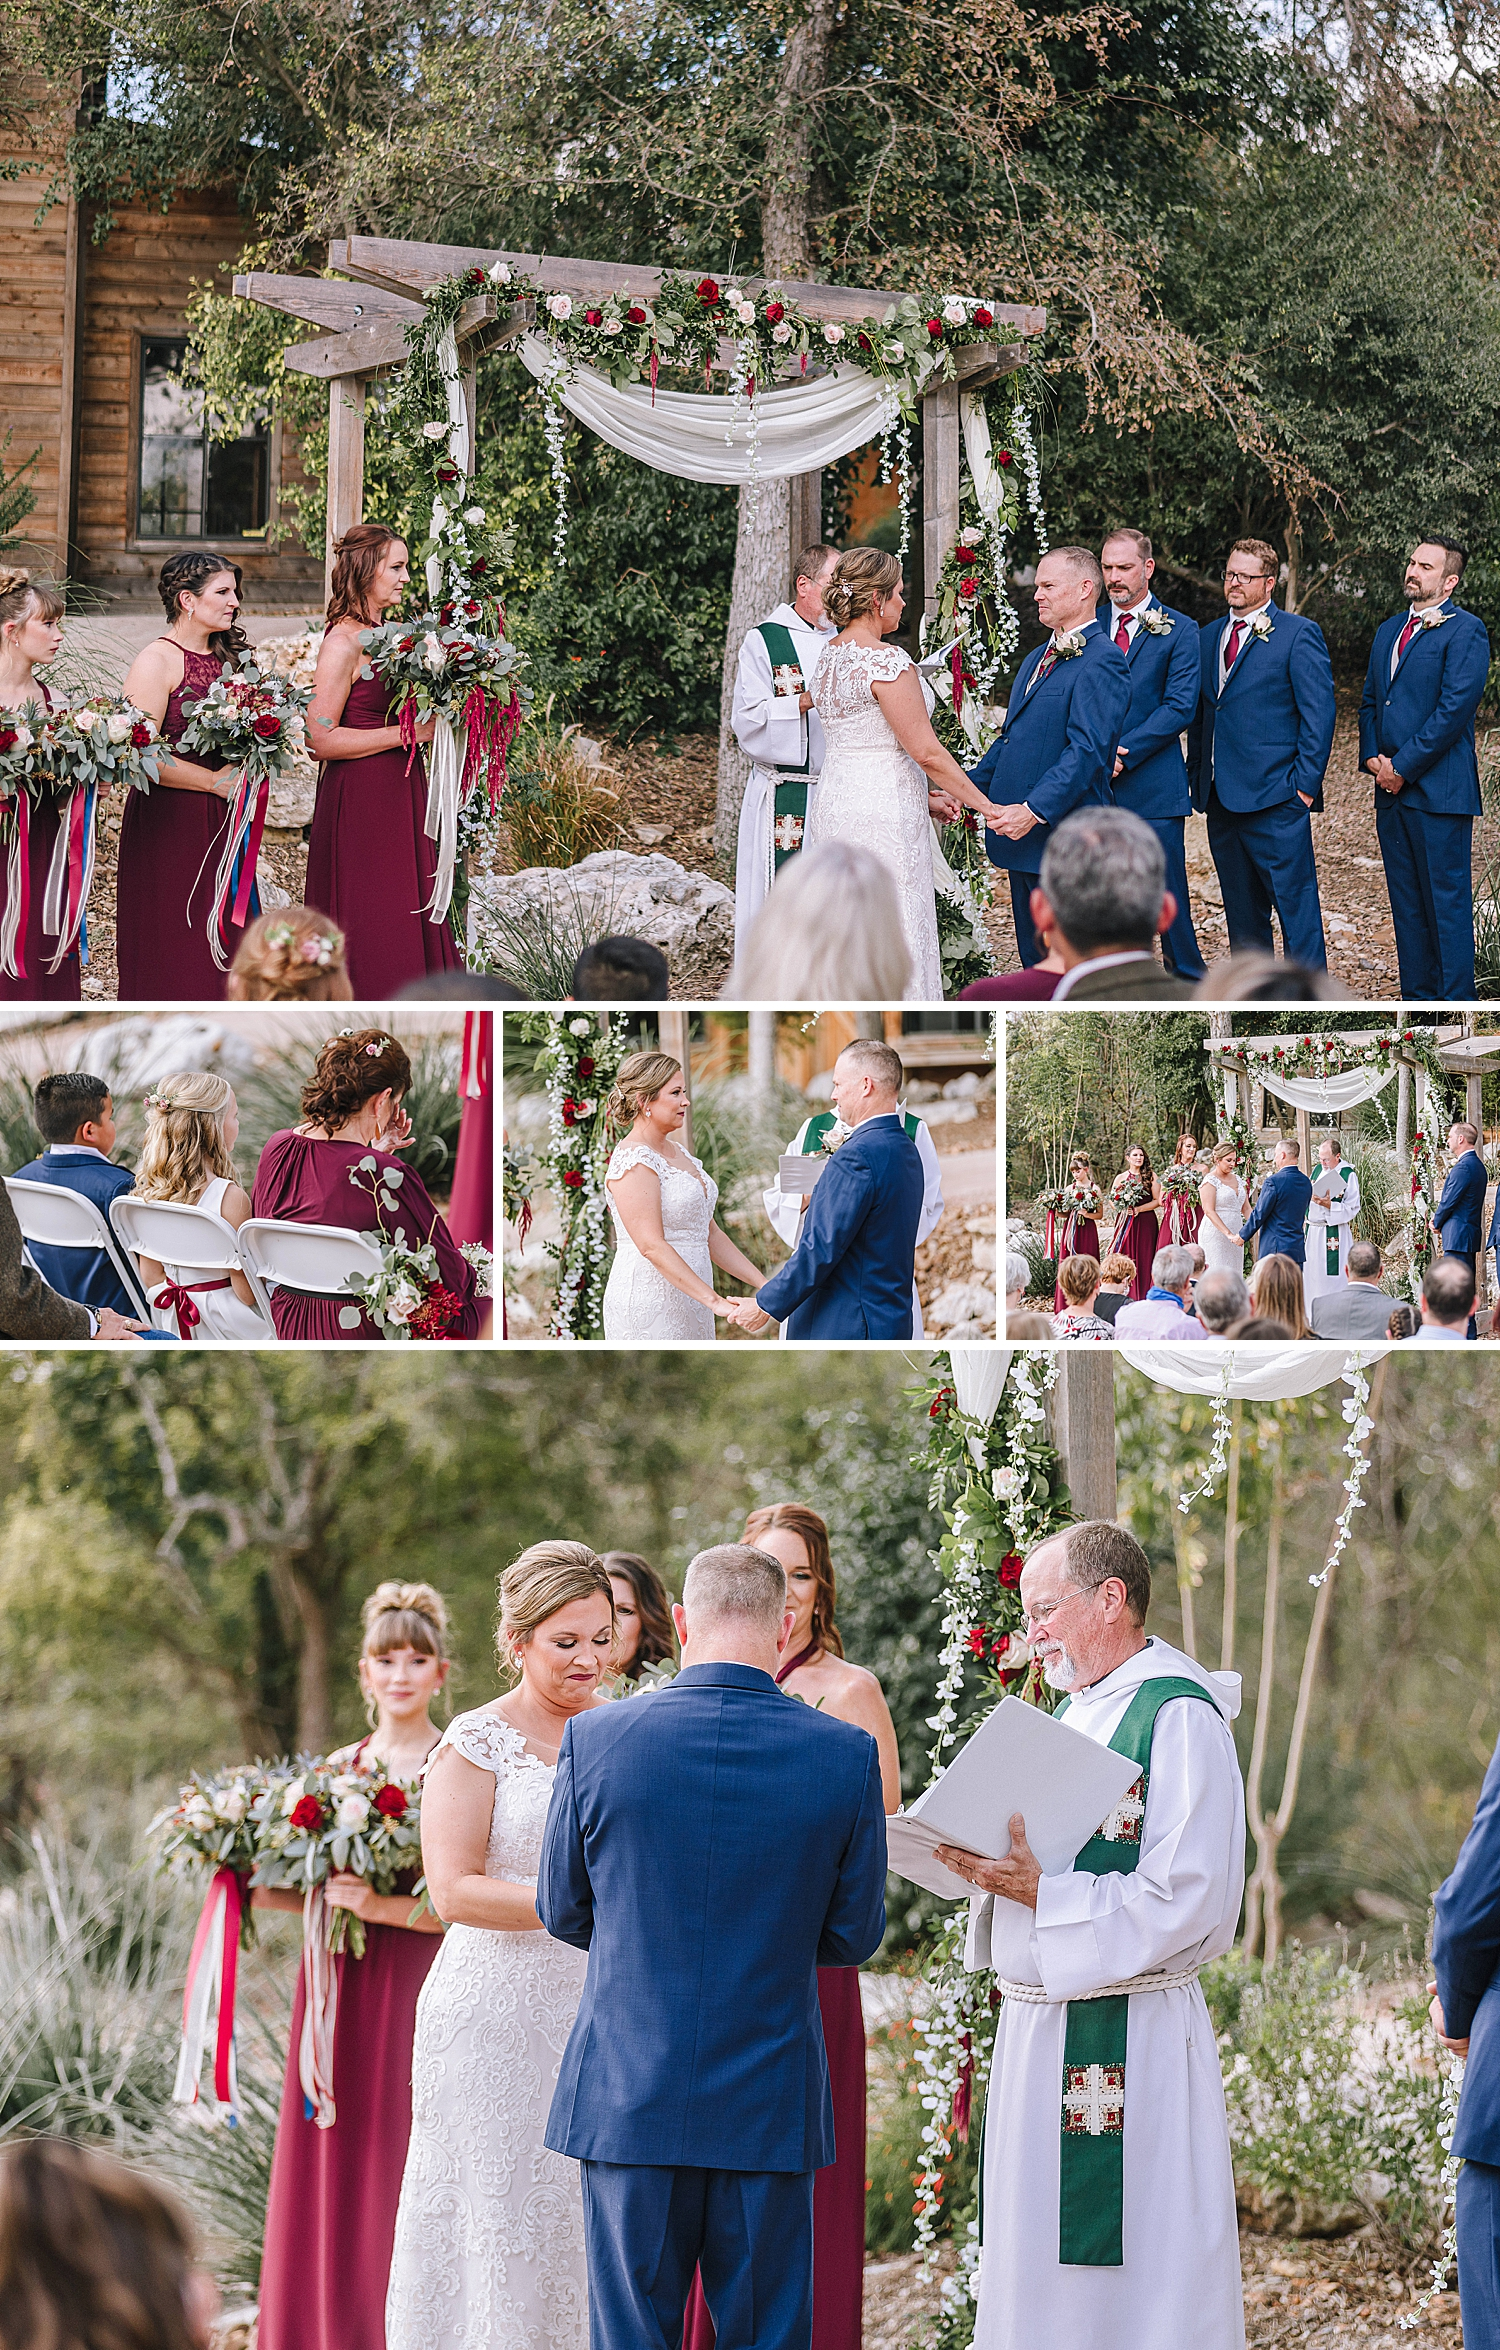 Geronimo-Oaks-Wedding-Venue-Seguin-Texas-Elegant-Navy-Burgundy-Wedding-Carly-Barton-Photography_0028.jpg